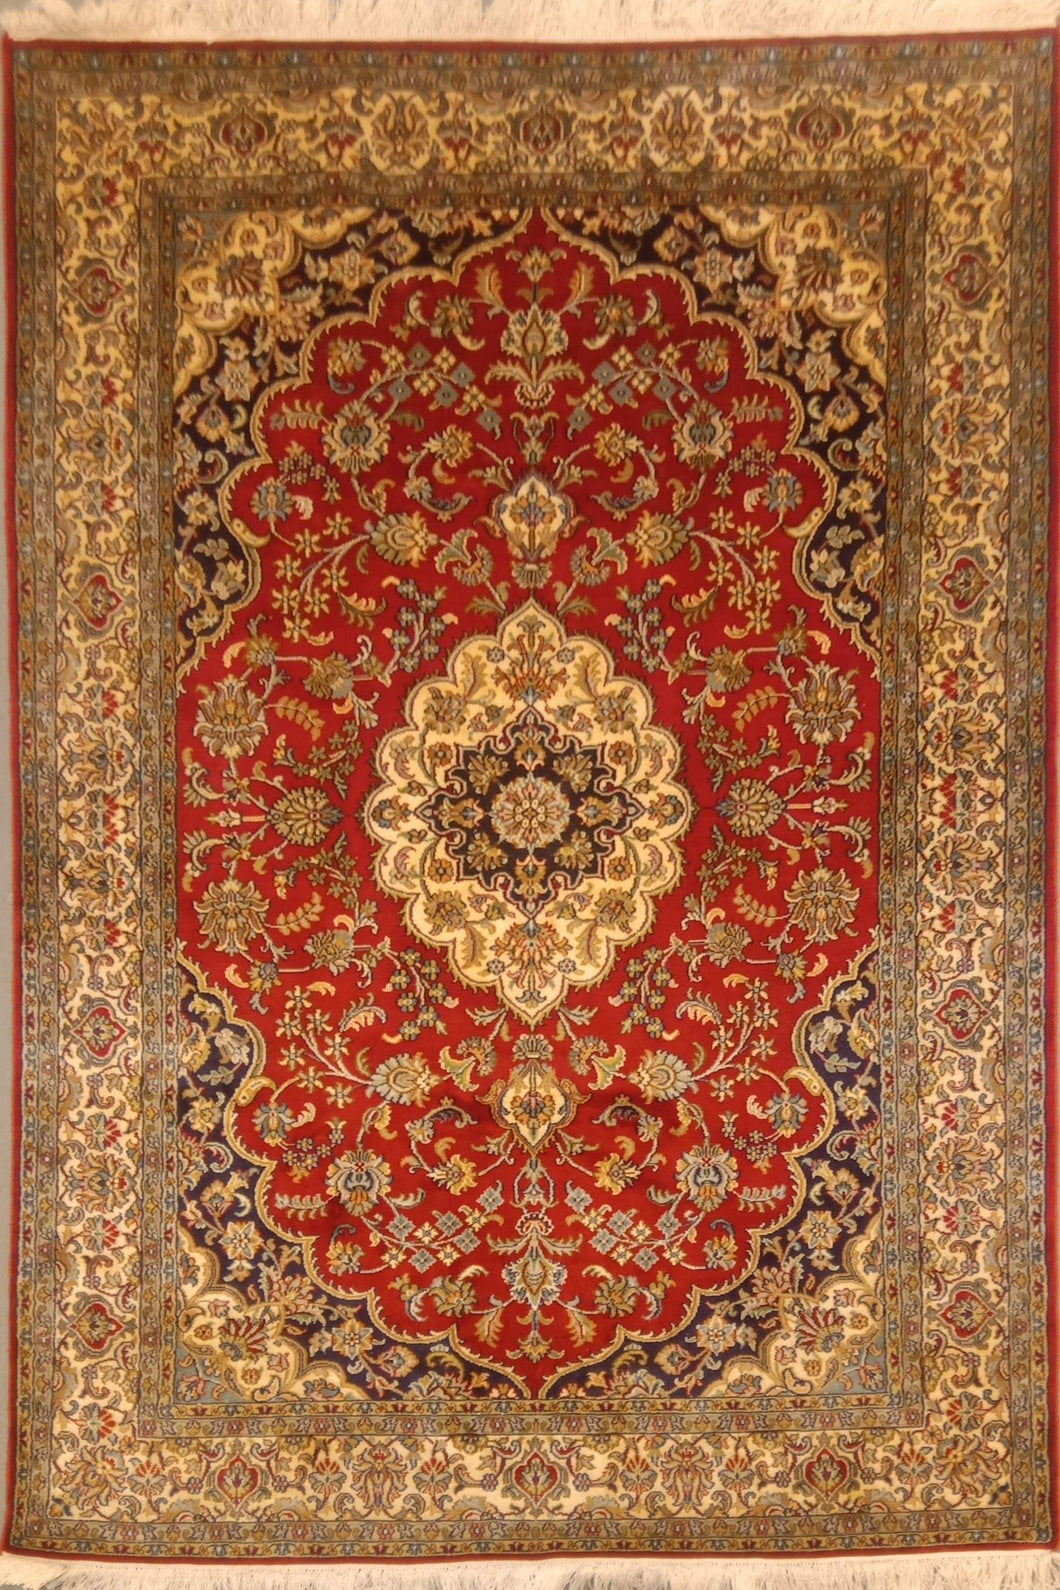 The Rugs Cafe Carpets 4x6 Charbagh (Four Gardens) Hand Knotted Silk Area Rug- Red